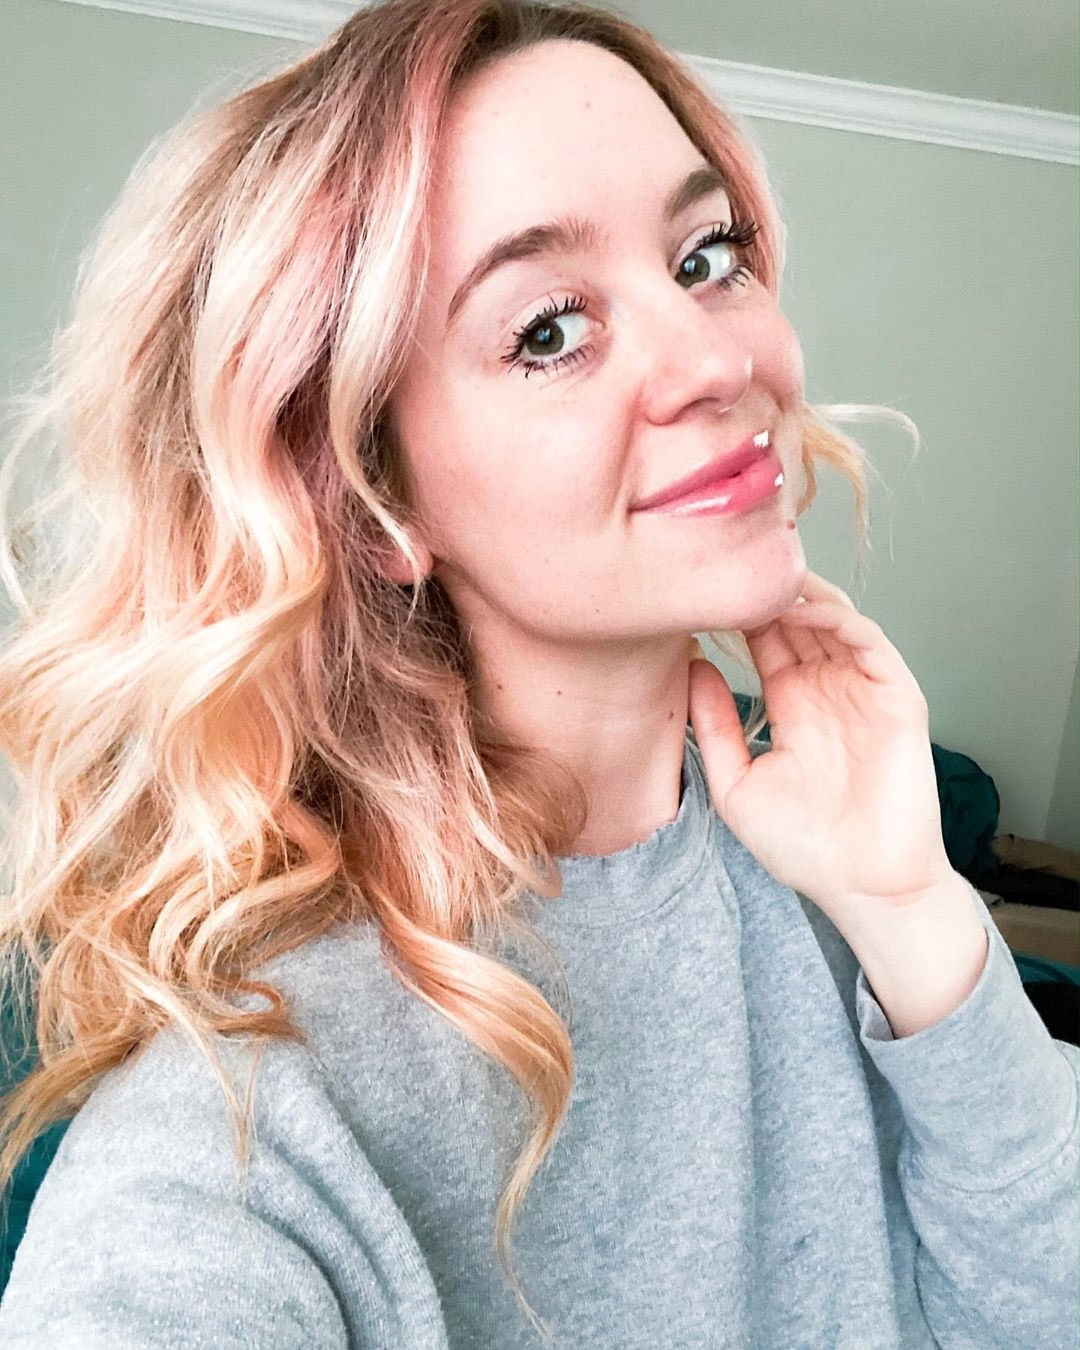 golden blonde natural curled hairstyle